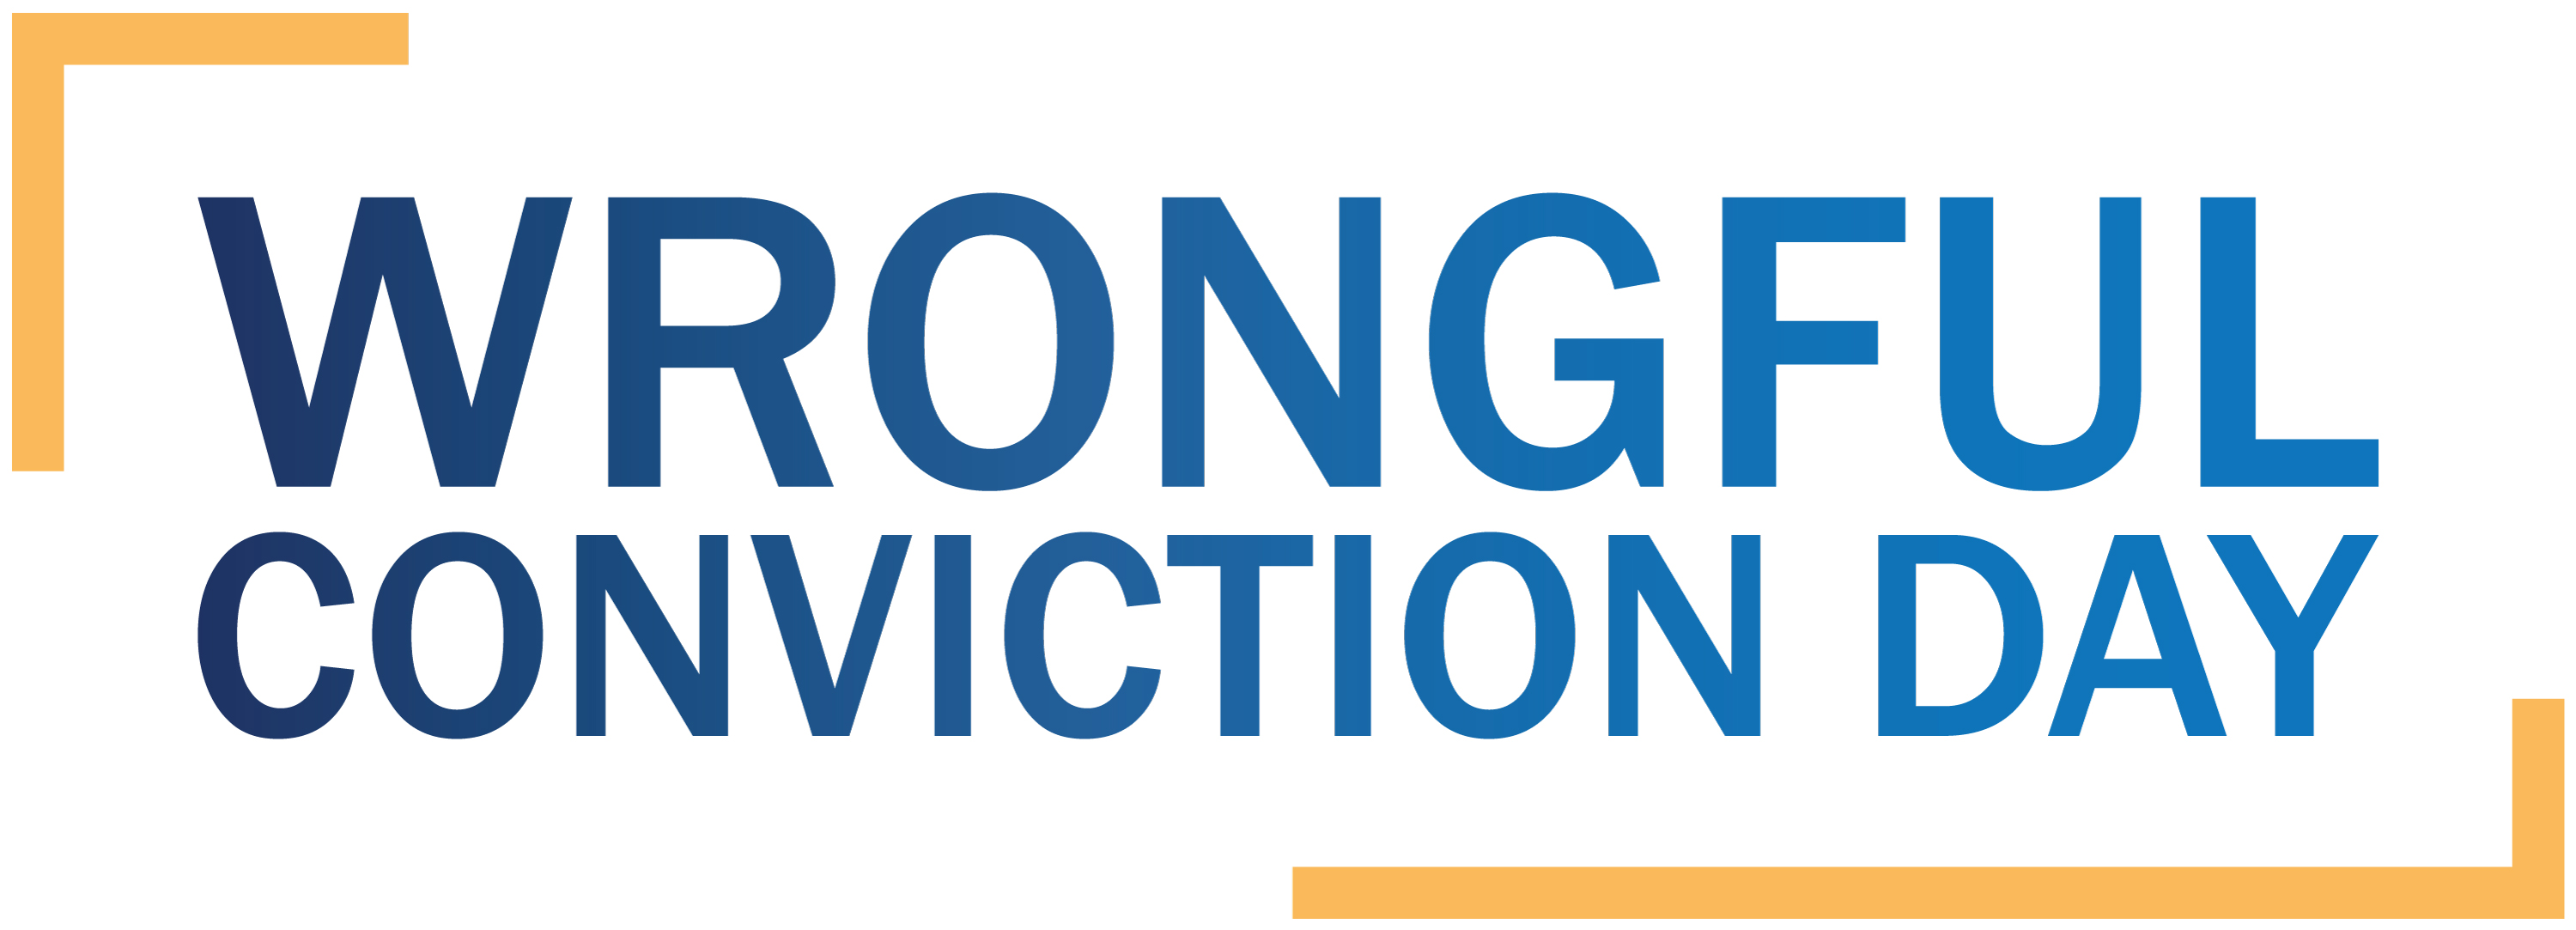 Wrongful Conviction Day Logo